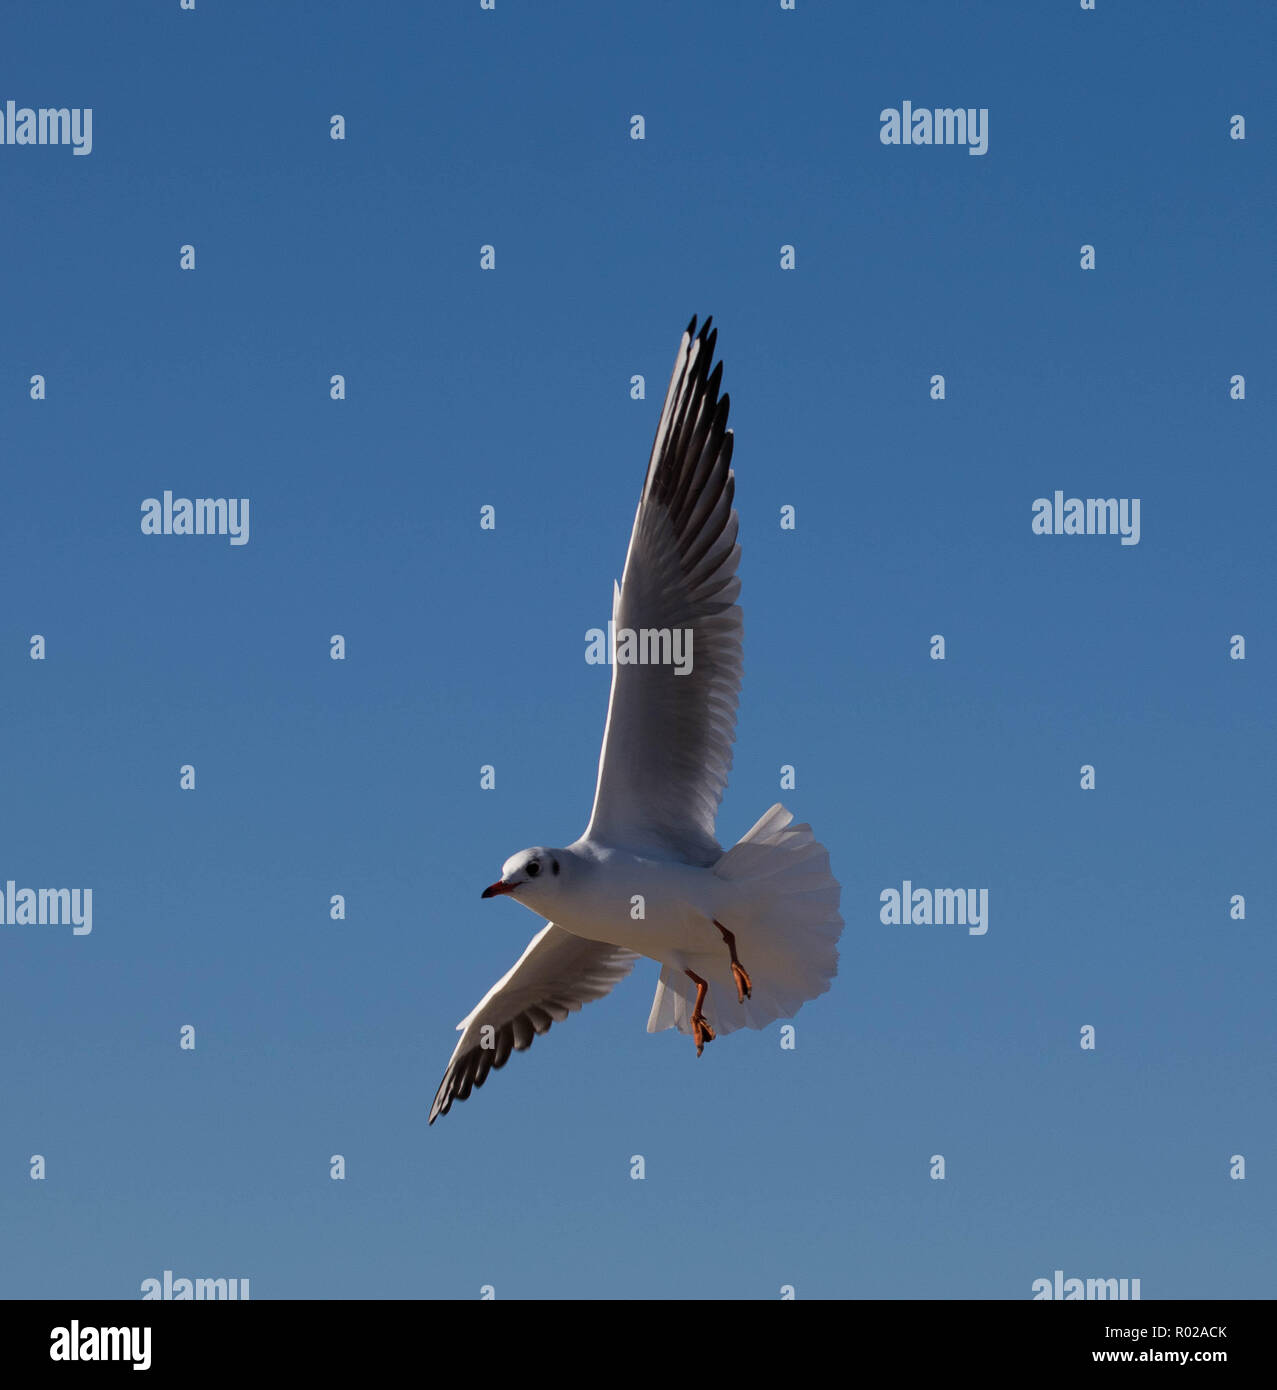 Flying seagull - Stock Image